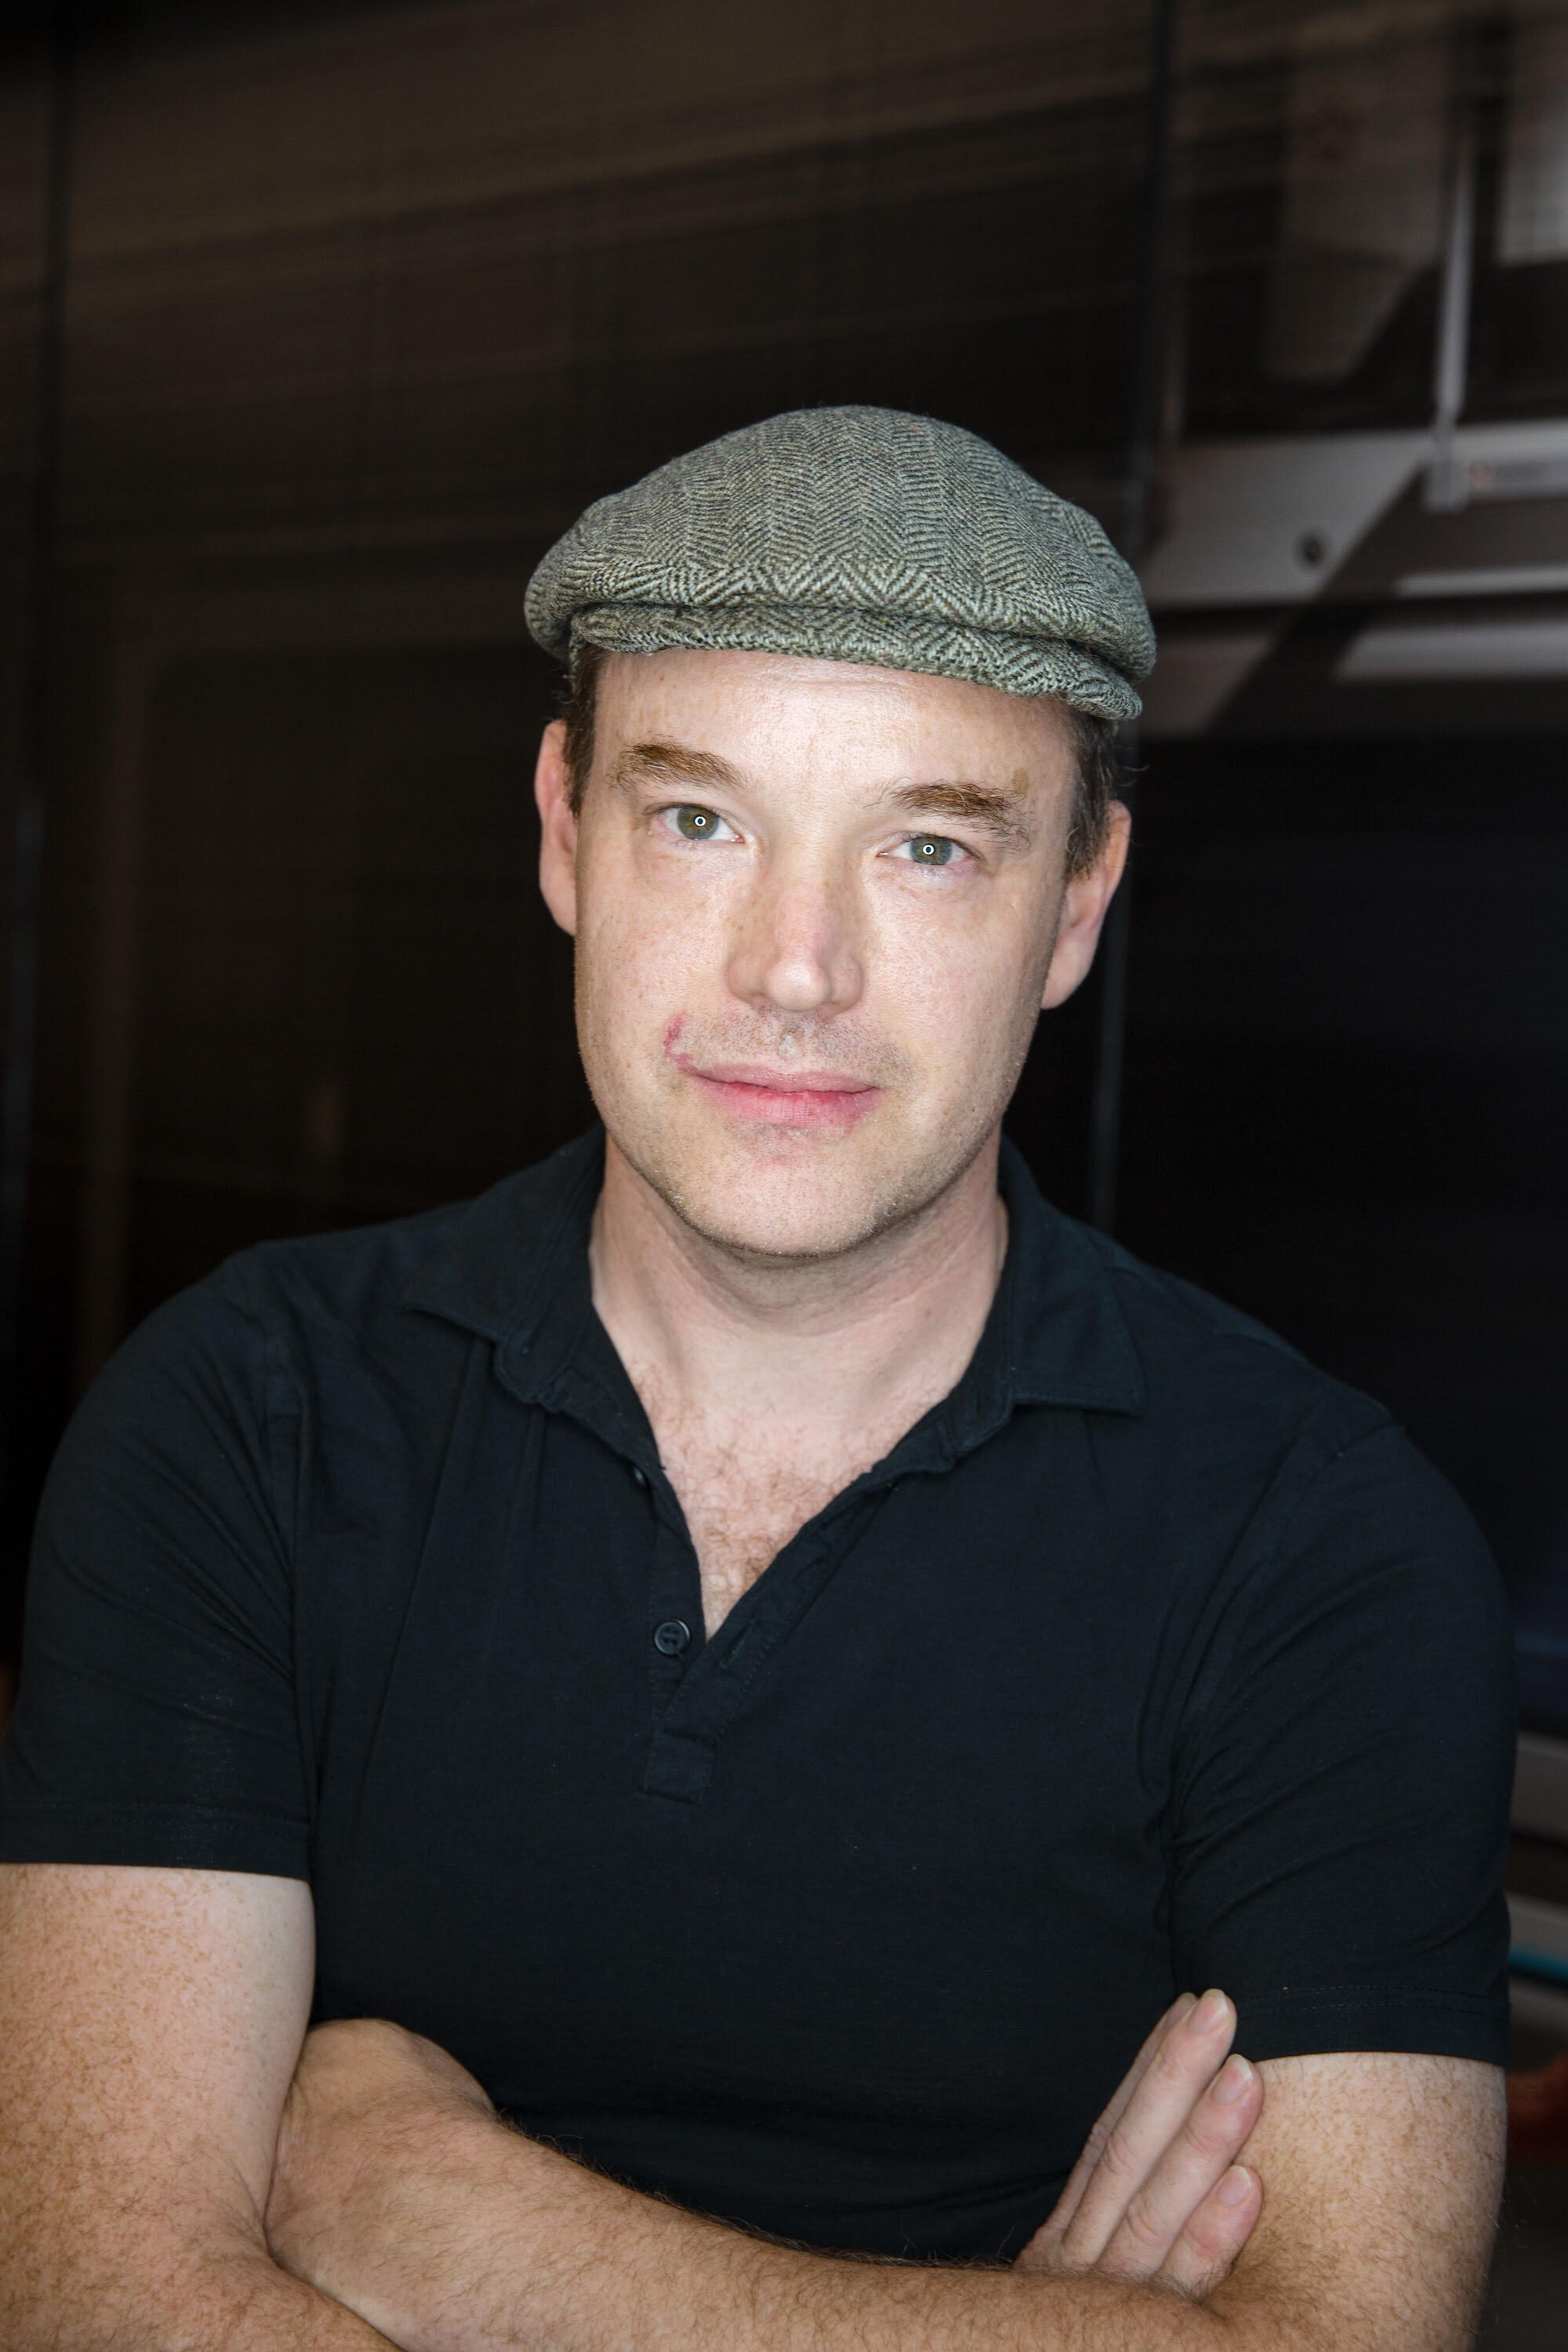 An upper-body shot of Owen. He has dark hair and blue eyes and is wearing a grey beret and a dark polo shirt. His arms are crossed.